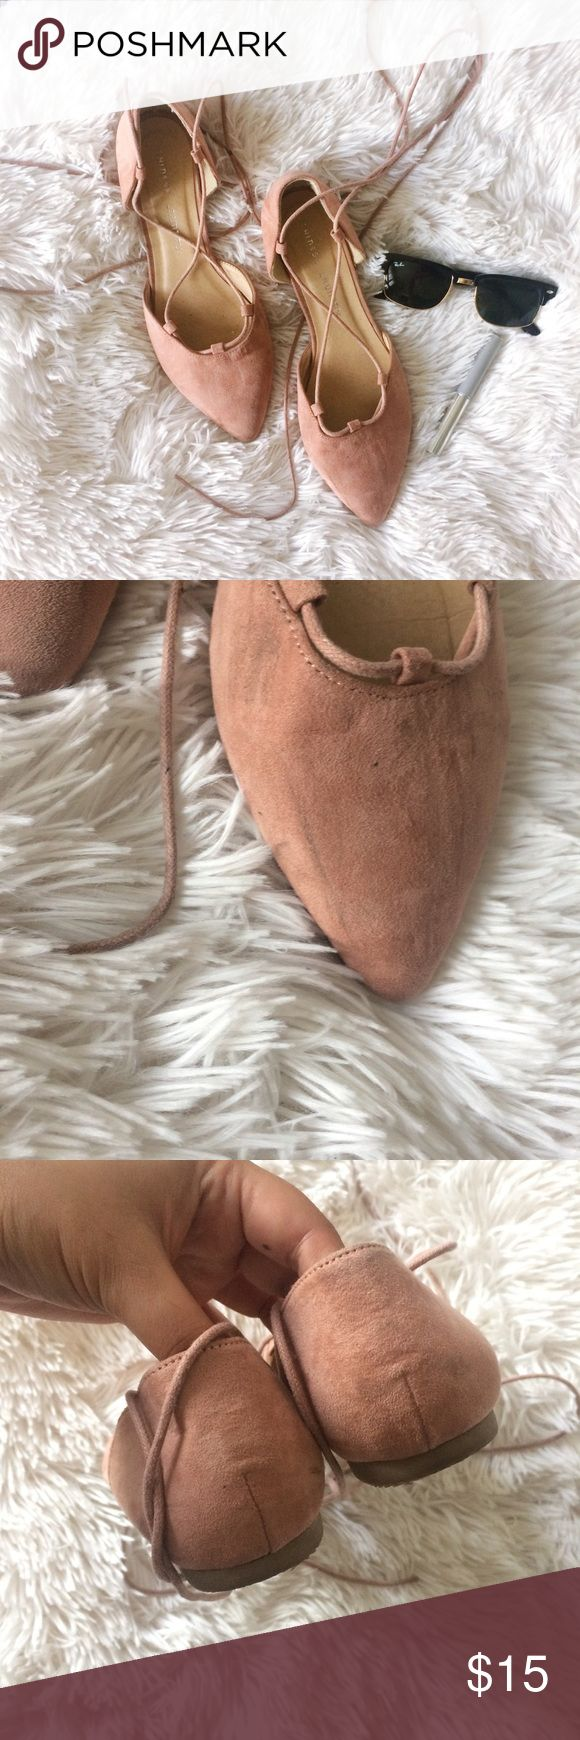 CHINESE LAUNDRY light pink d'Orsay la up flats Brand: Chinese Laundry Size: 9 Condition: good condition   *has some marks on instep of shoe, see photos  *wear on sole Chinese Laundry Shoes Flats & Loafers